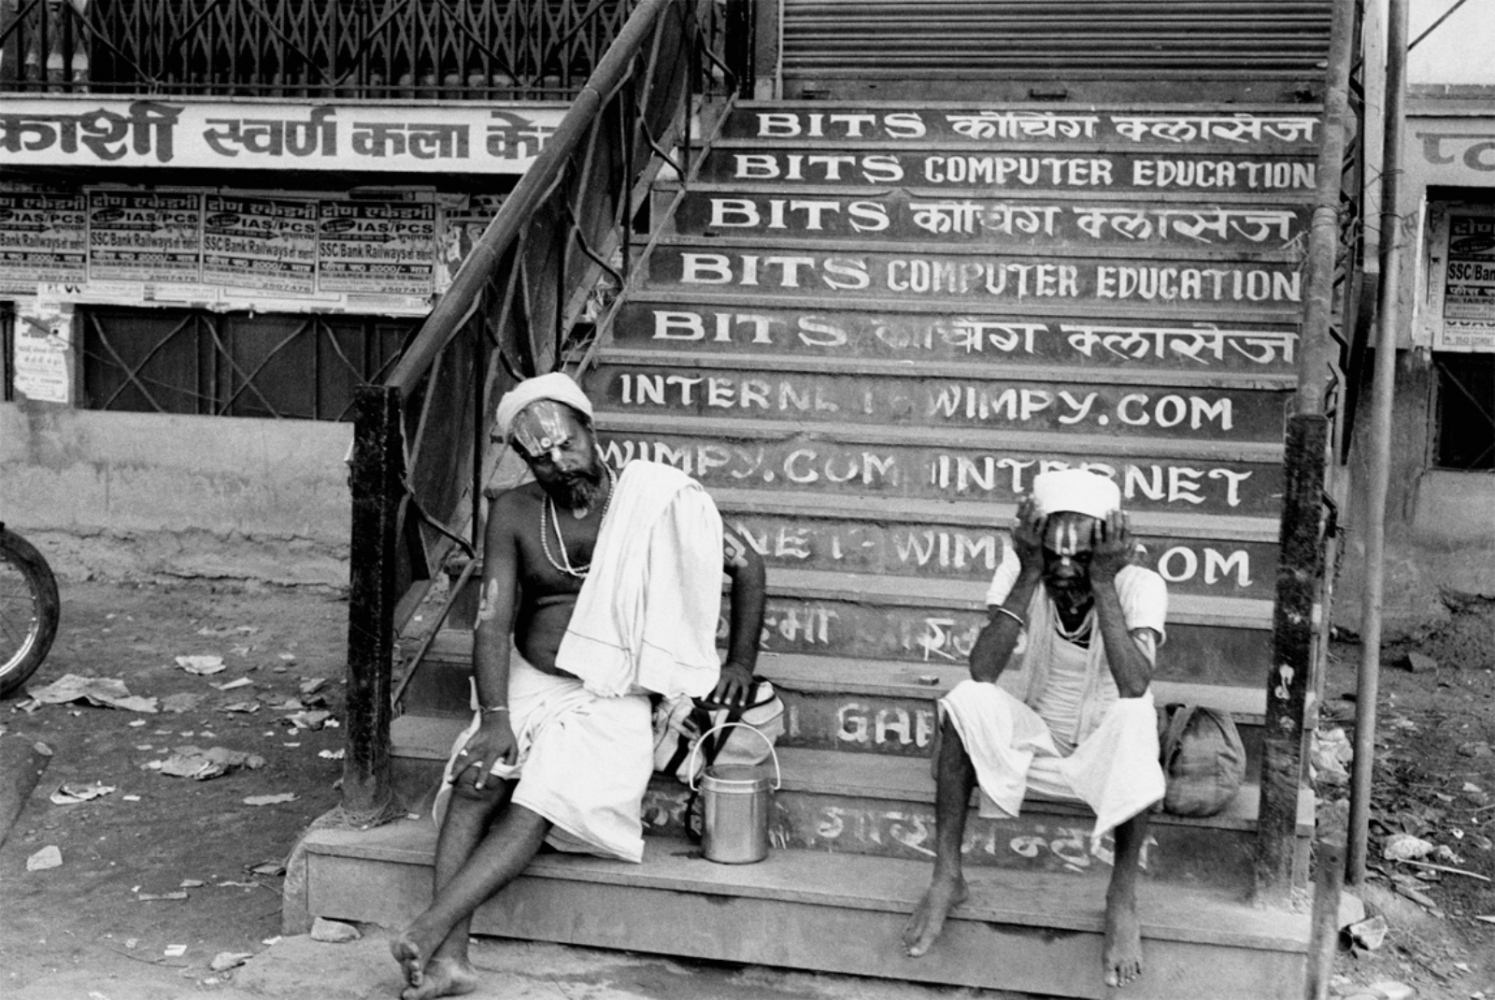 Brahmans Sitting on Steps, Varanasi, India, November 2003